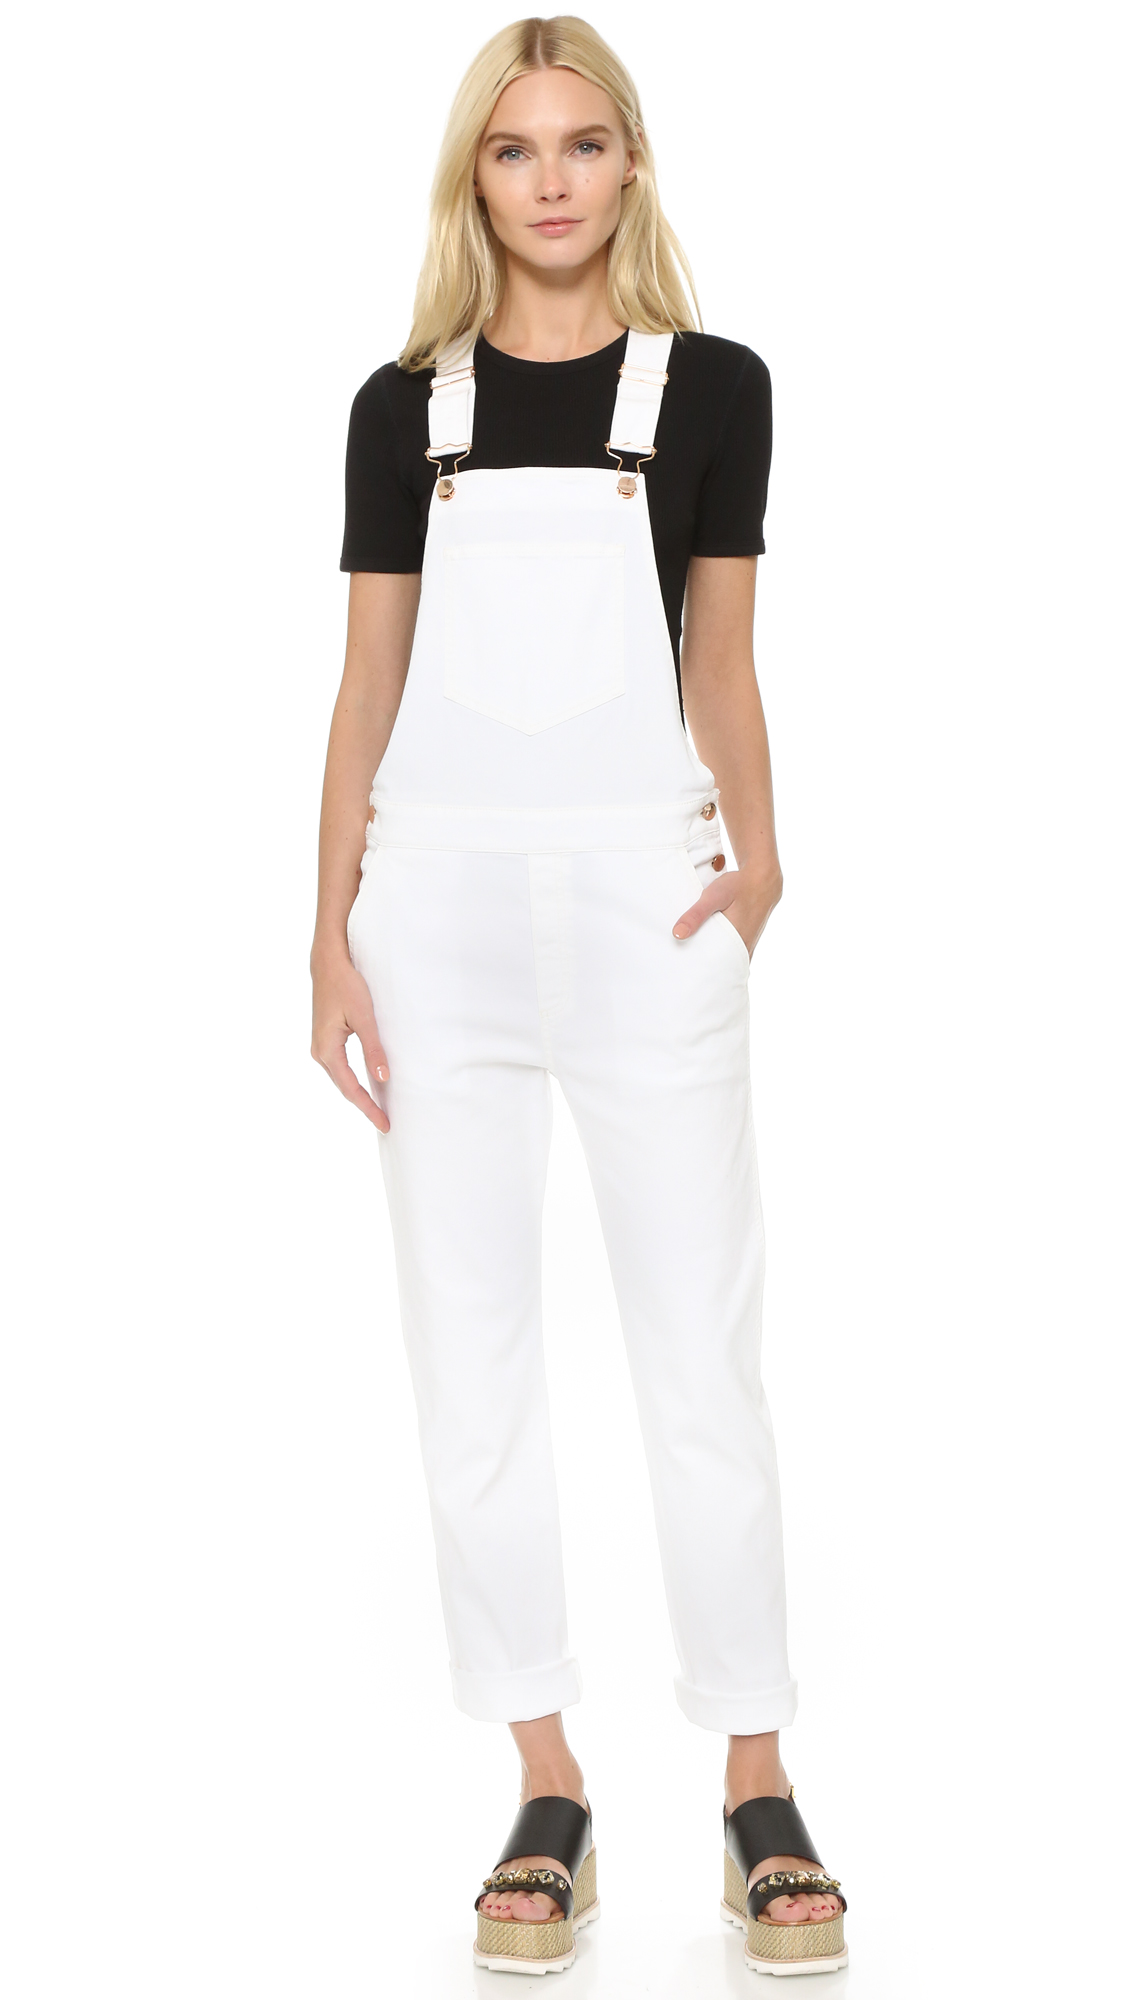 Polished buttons add a touch of shine to these crisp white Stella McCartney overalls. 5 assorted pockets. Adjustable straps. Fabric: Stretch denim. 98% cotton/2% elastane. Wash cold or dry clean. Made in Italy. Measurements Inseam: 29in / 73.5cm Leg